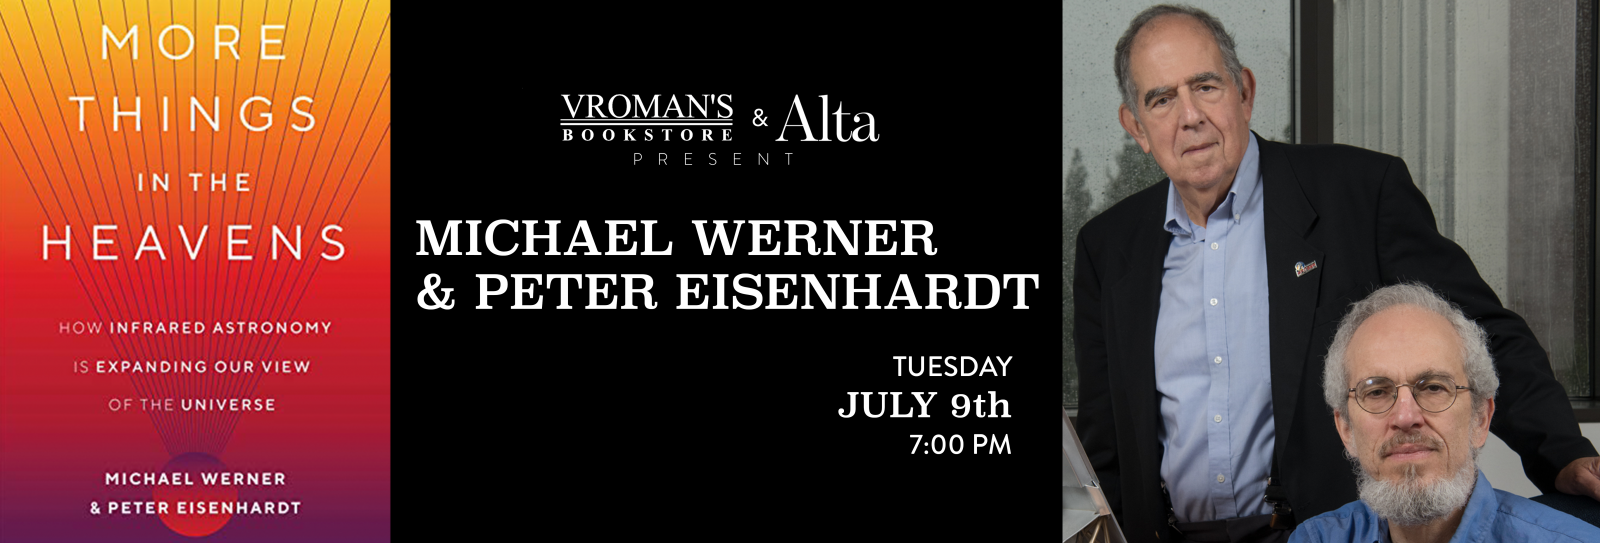 Michael Werner & Peter Eisenhardt book signing Tuesday July 9th at 7pm